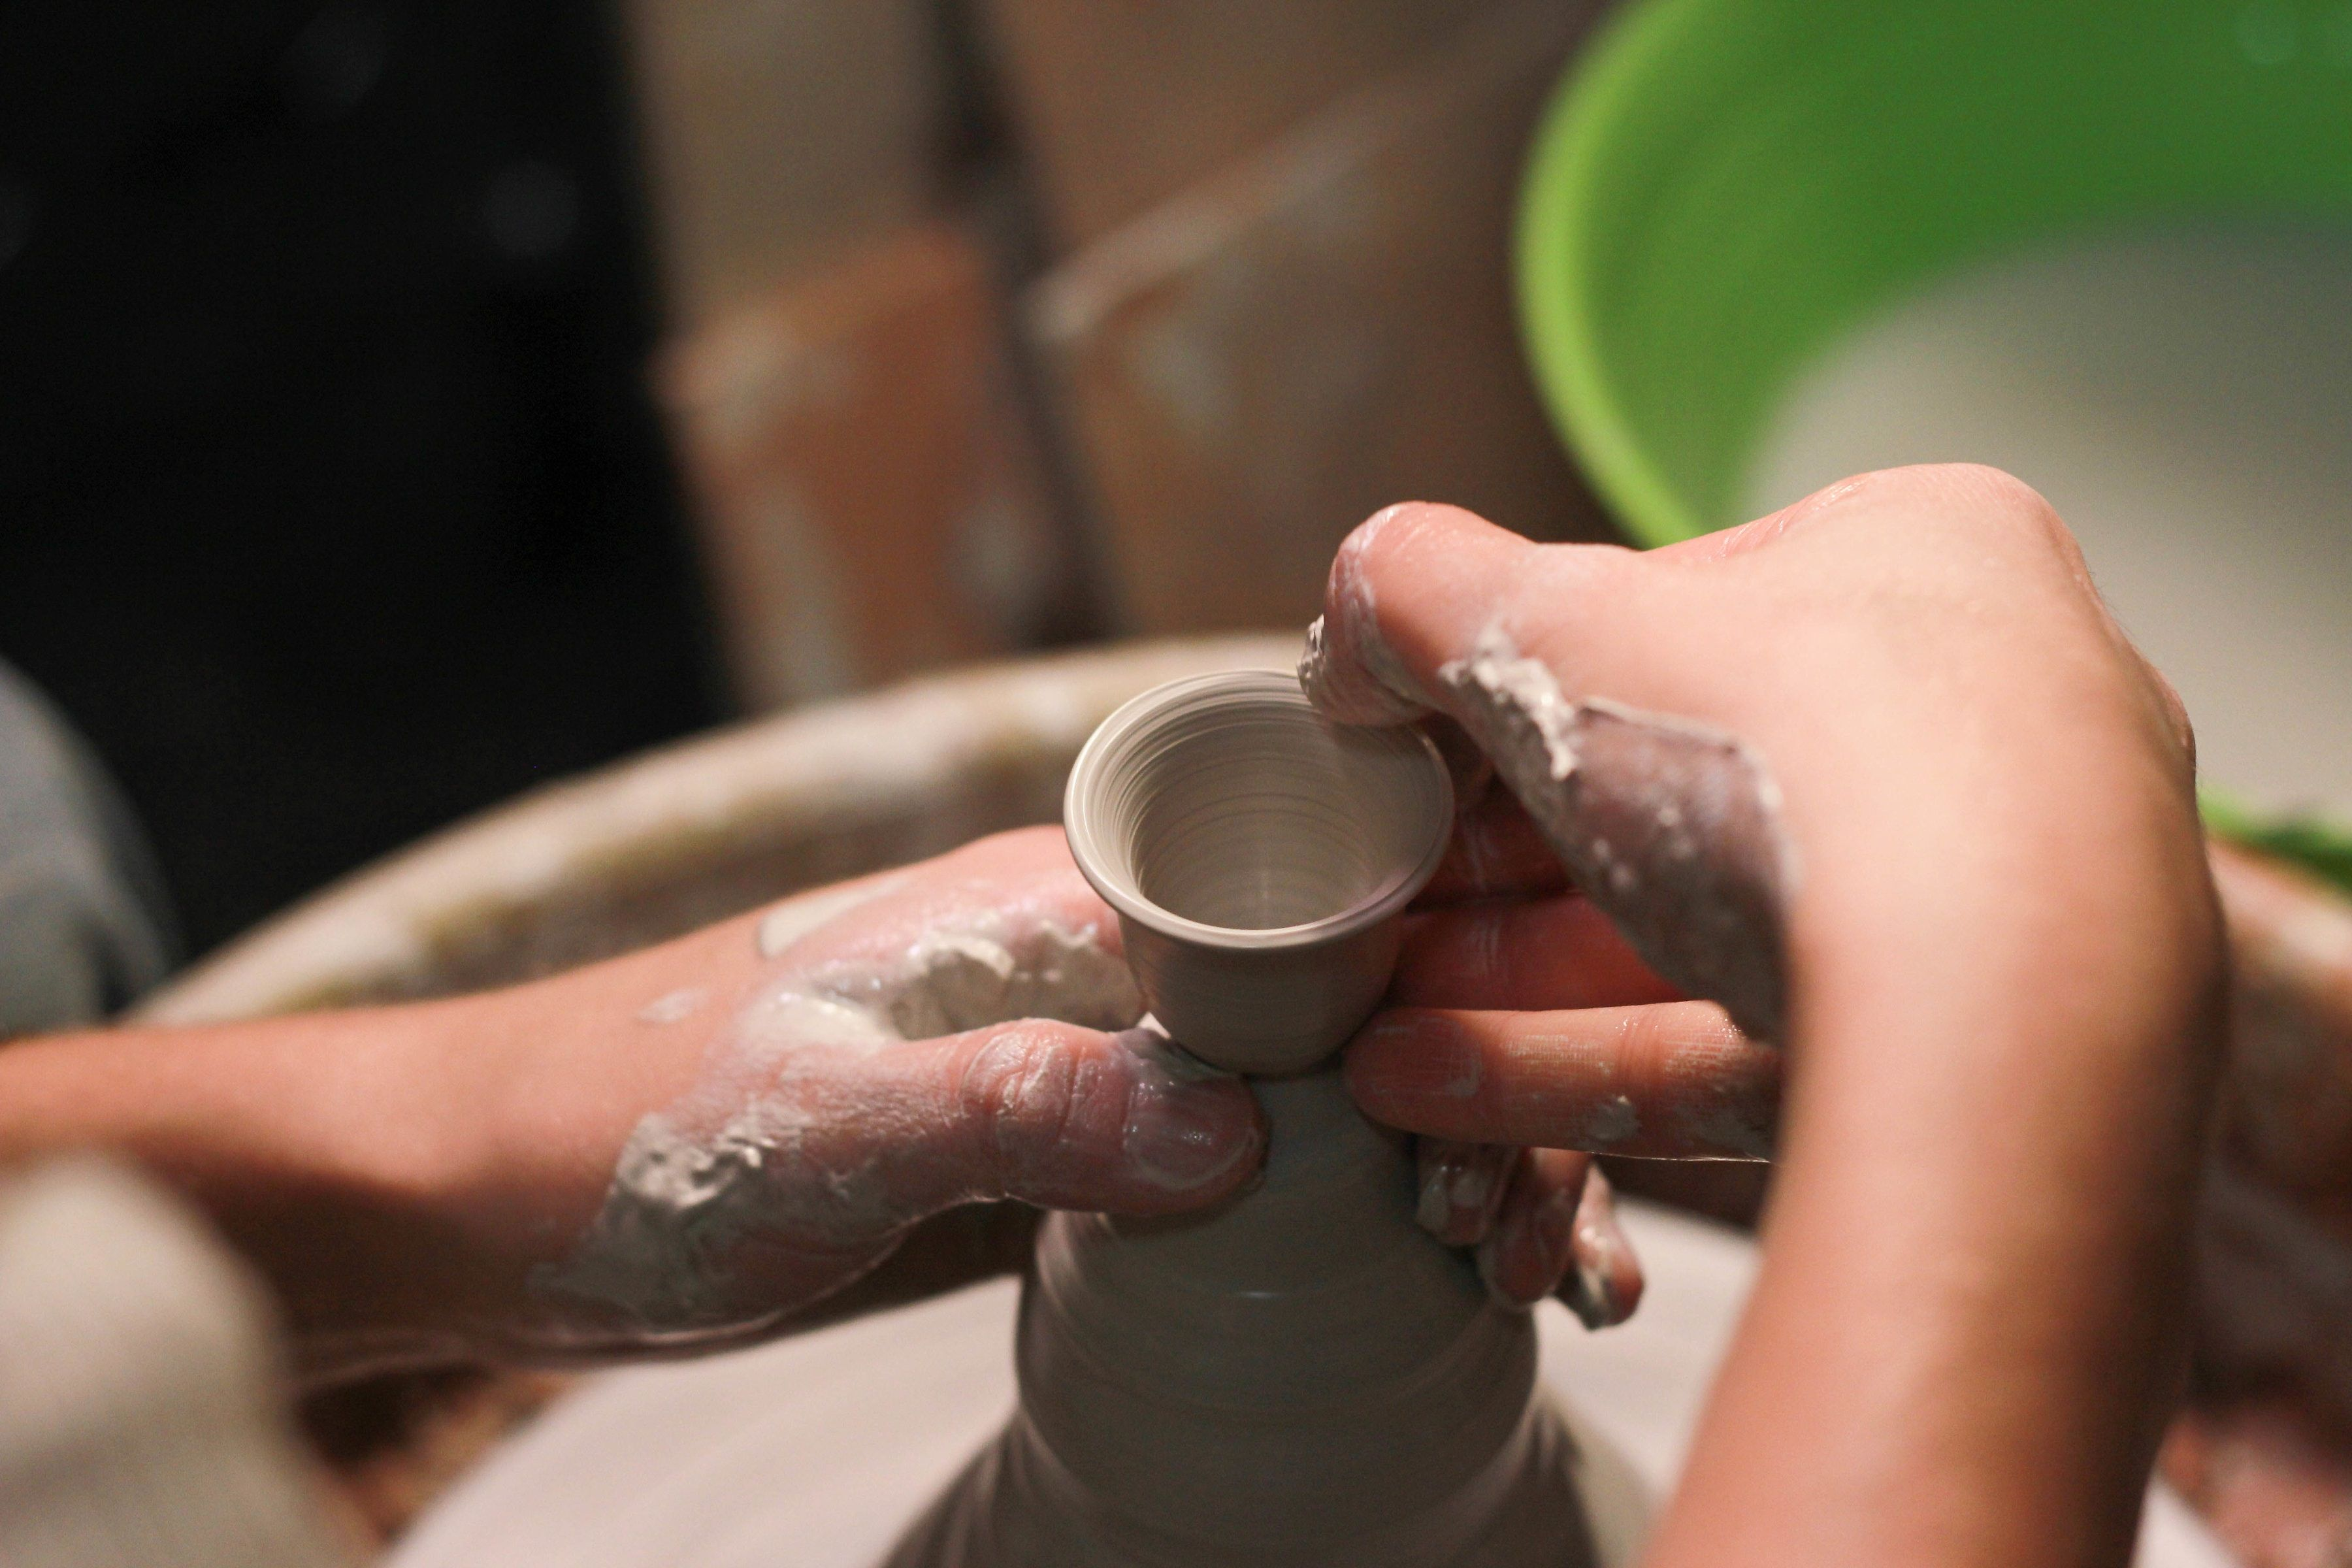 Create mugs, pots and figurines using clay. Use a potter's